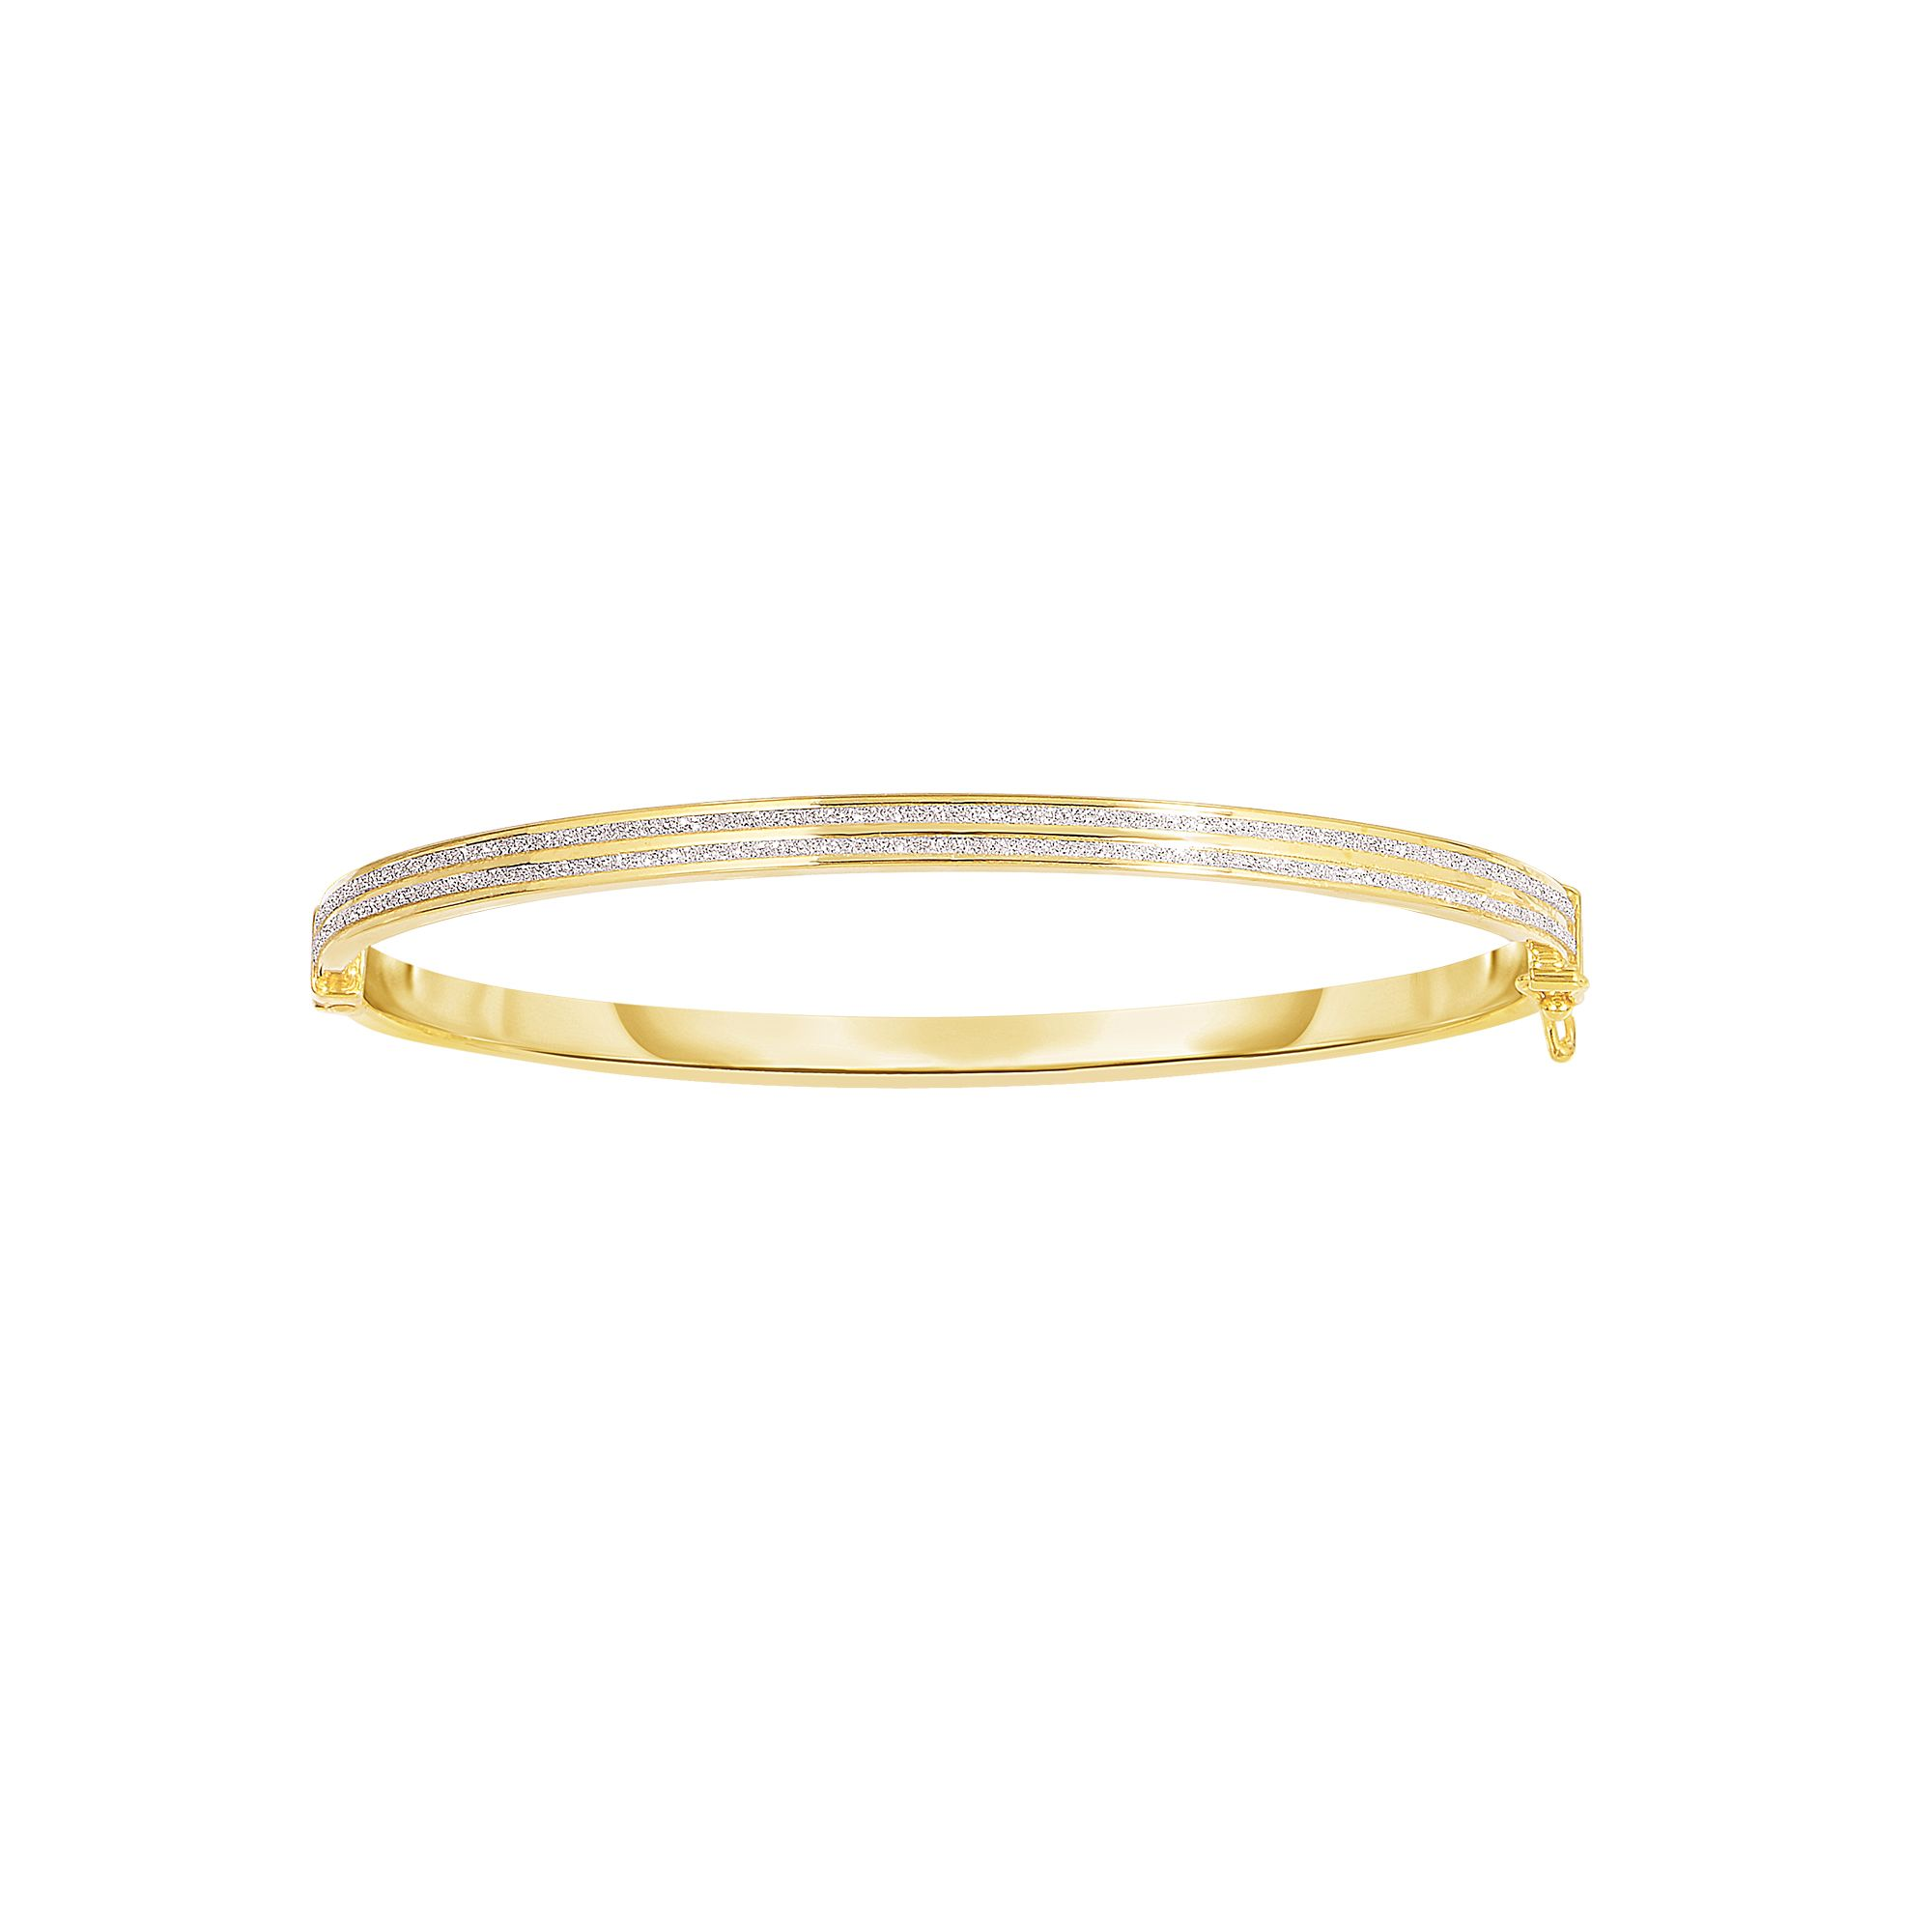 14 Karat Gold Double Row Glitter Bangle Bracelet